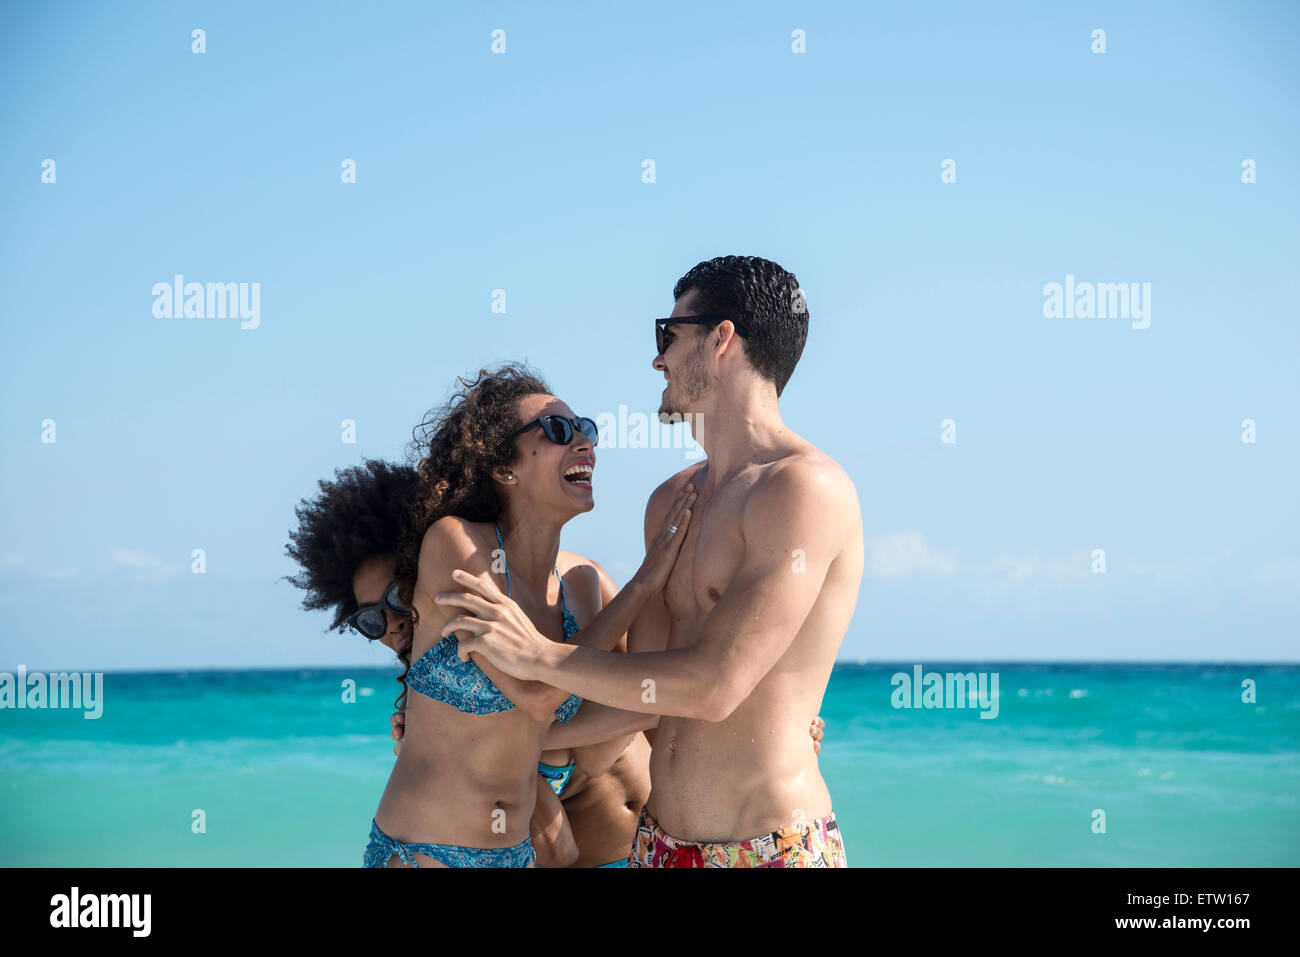 Three people playing on the beach - Stock Image